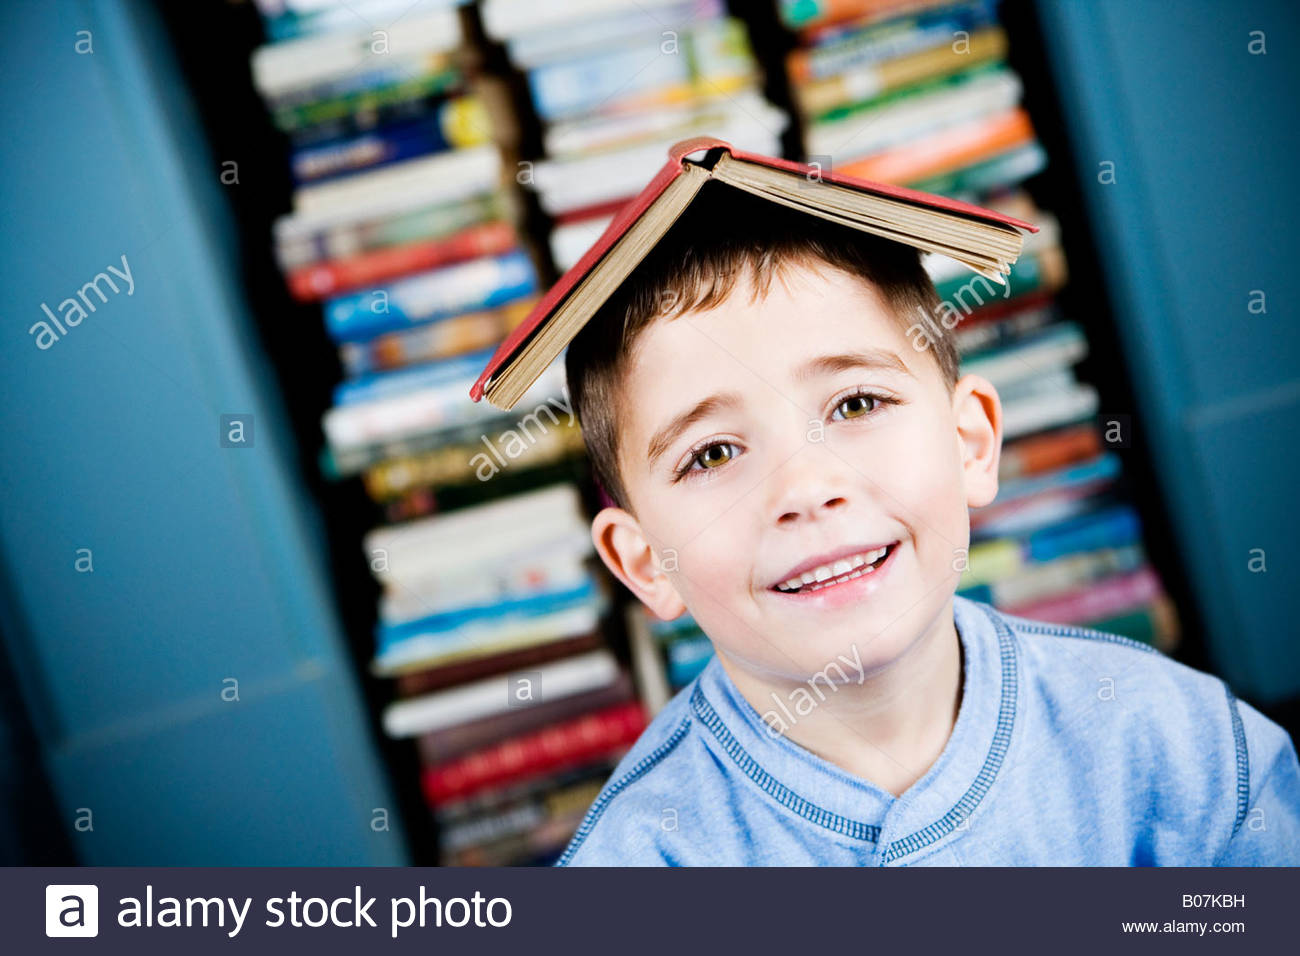 little boy with book on his head Stock Photo